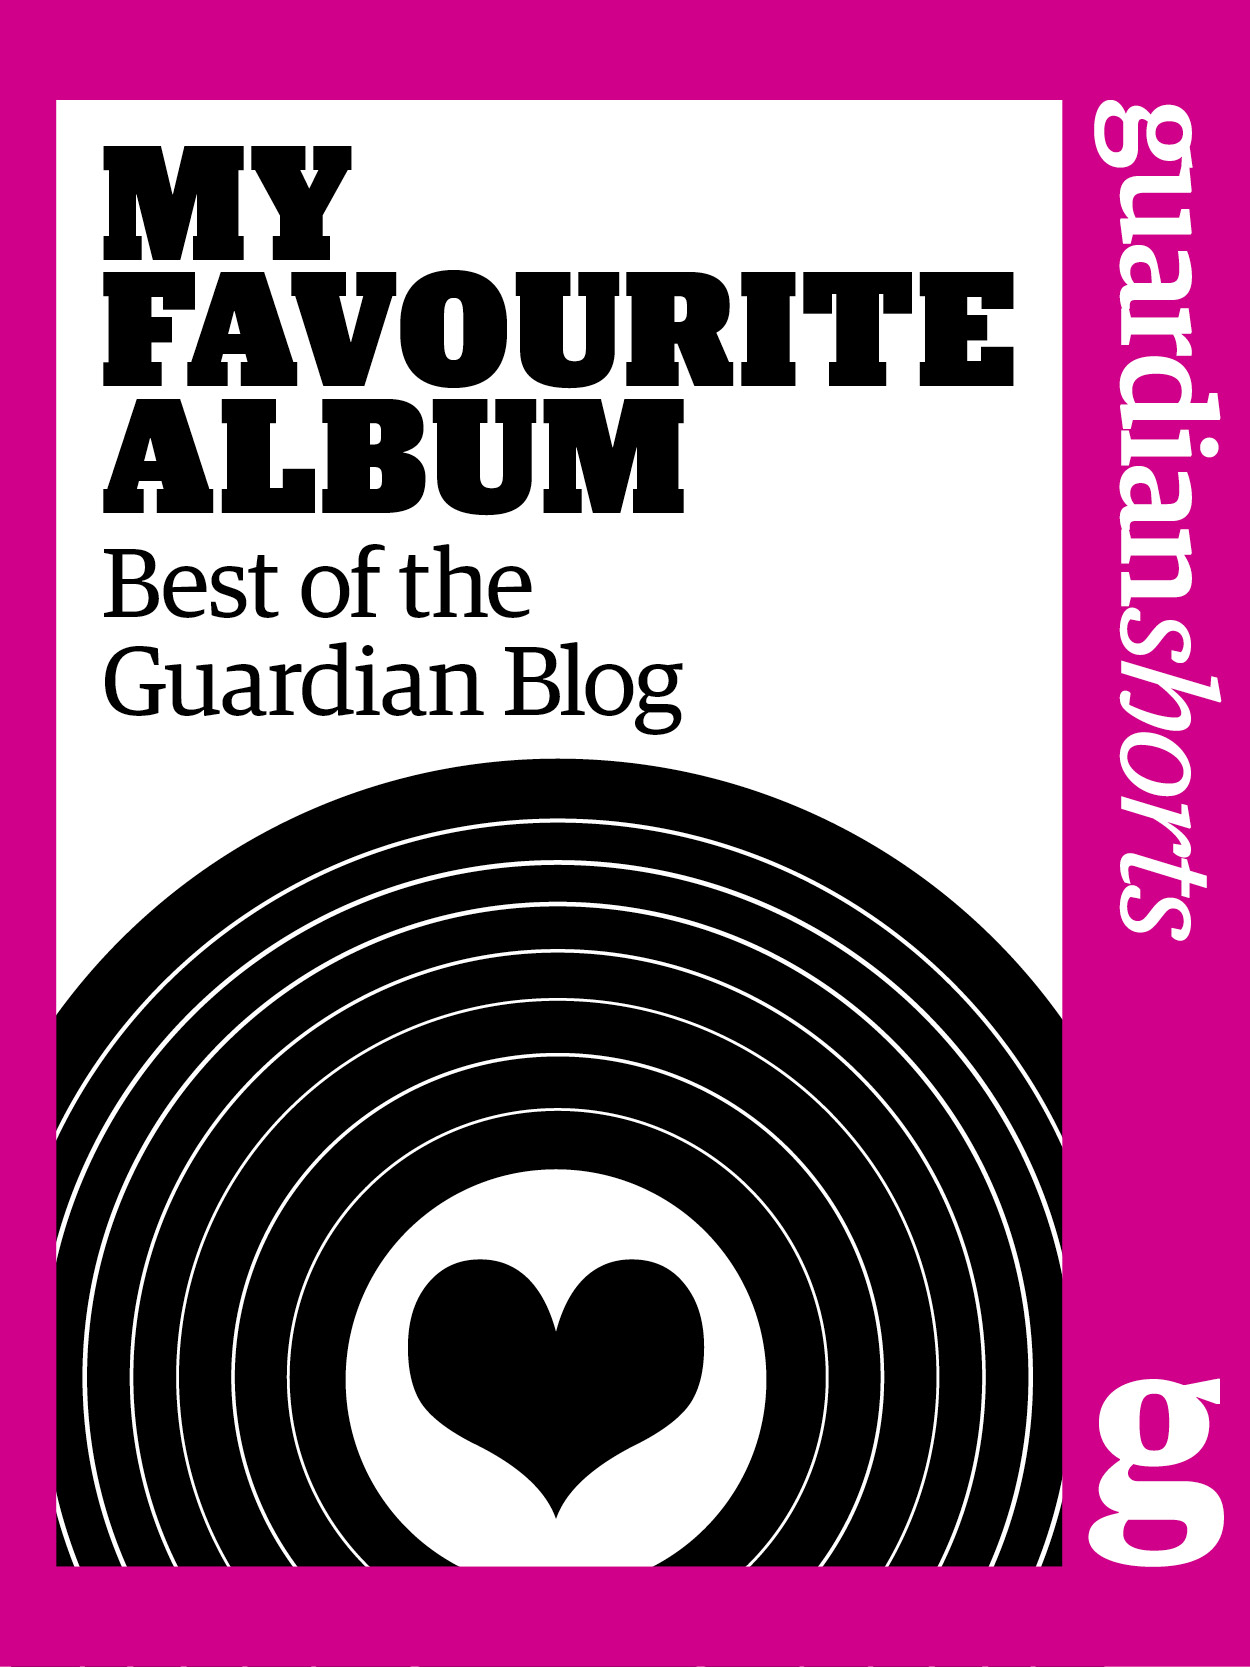 My Favourite Album Best of the Guardian Blog